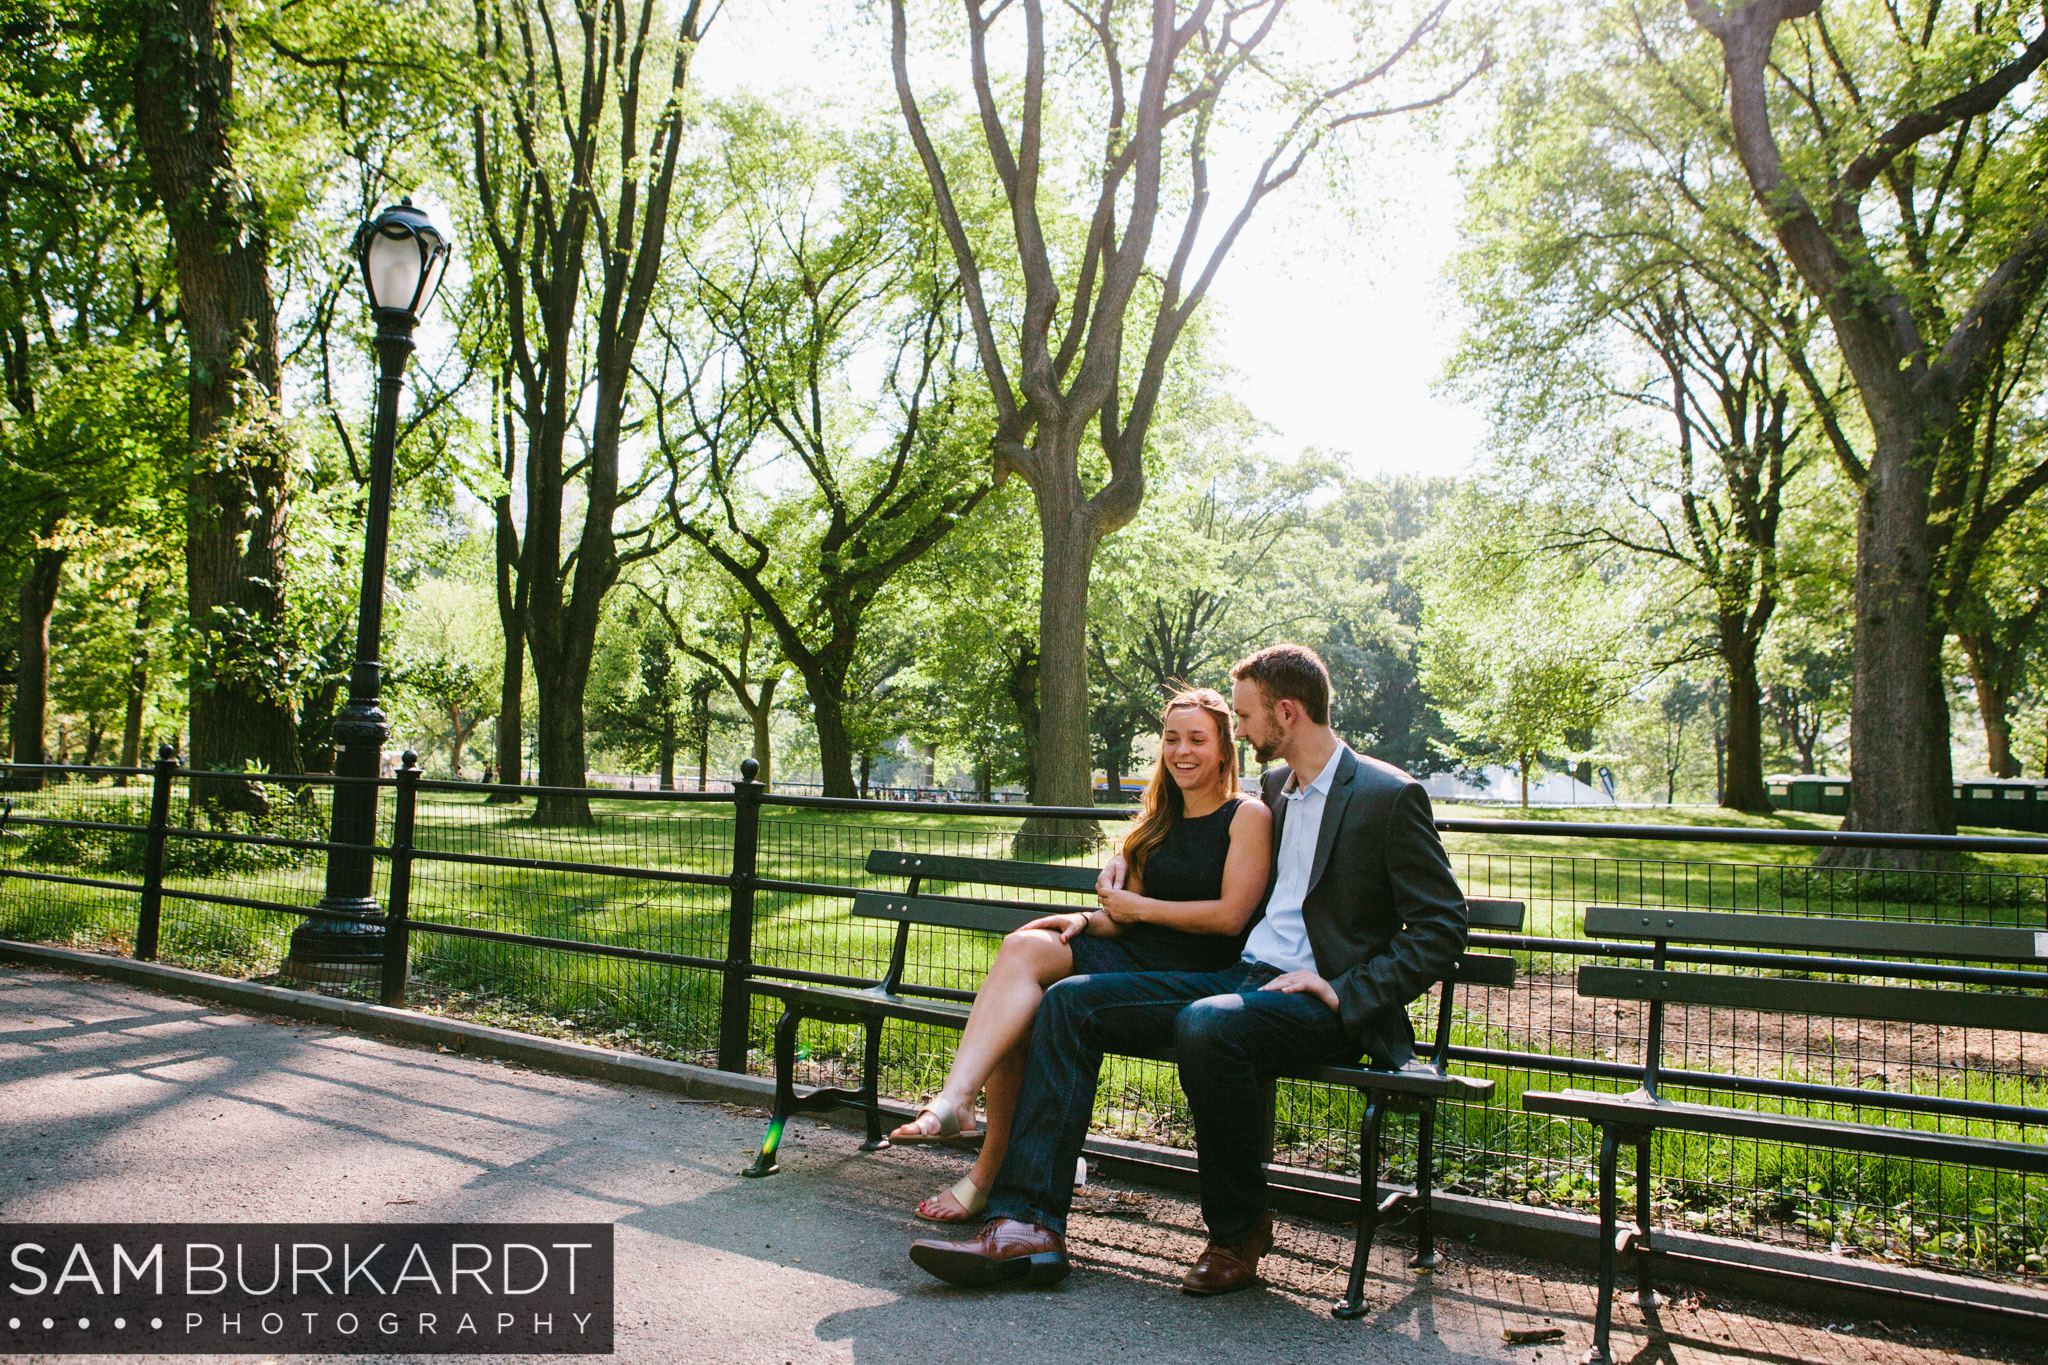 sburkardt_new_york_proposal_engagement_central_park_011.jpg